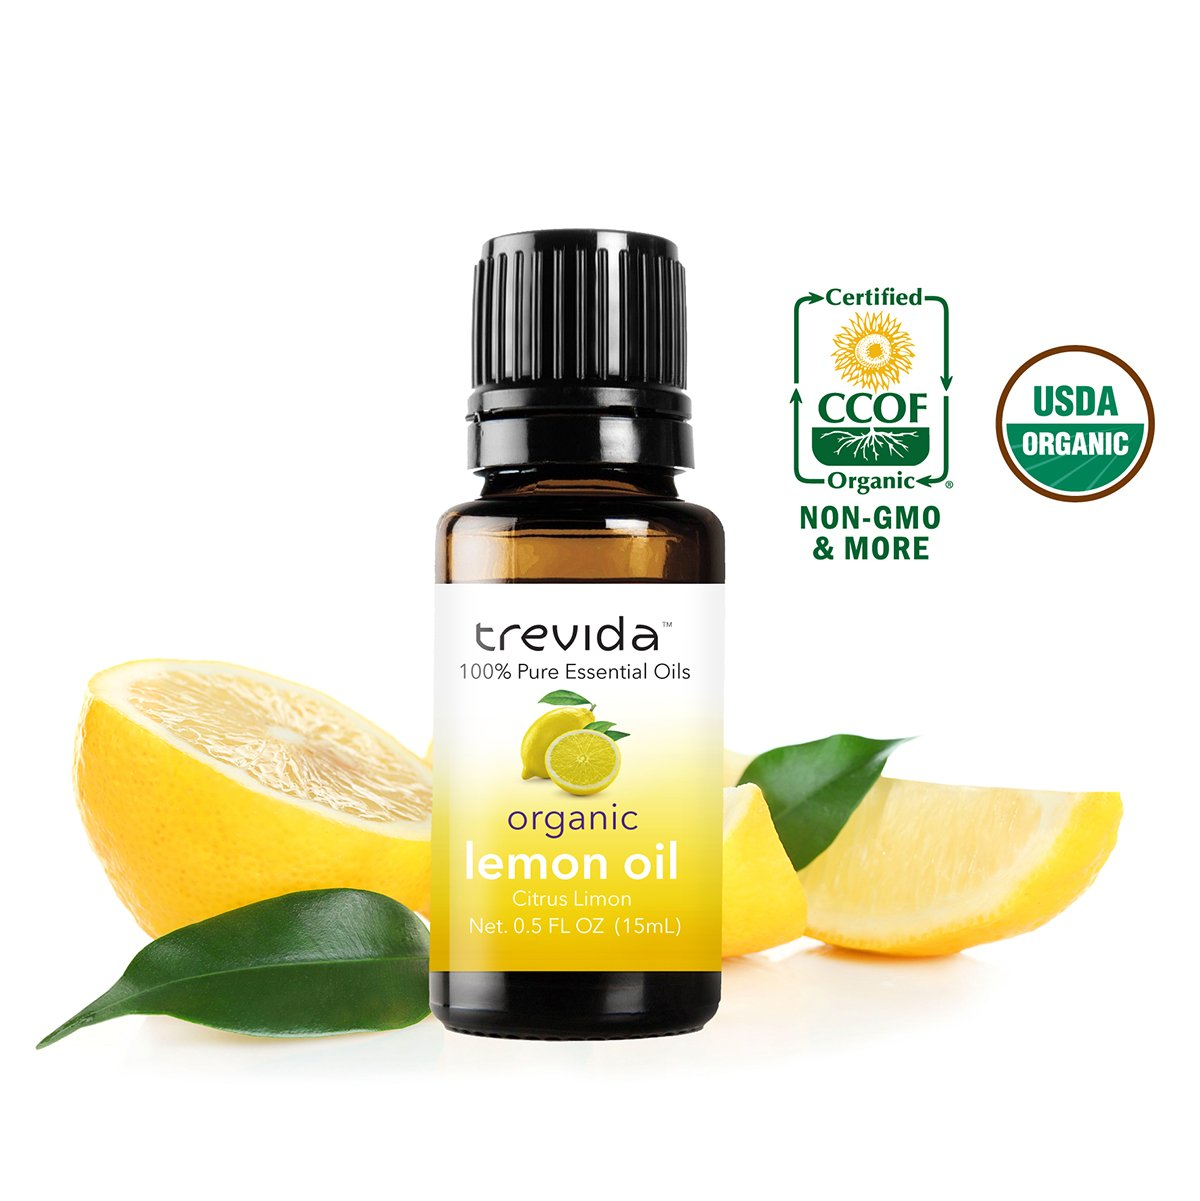 Trevida USDA Organic Lemon Essential Oil | From Fresh Italian Lemon Peels | Bottled in the USA | 15 ML | 100% Pure | Must Have for Aromatherapy, Organic Cleaning, Scented Candles, DIY & More.